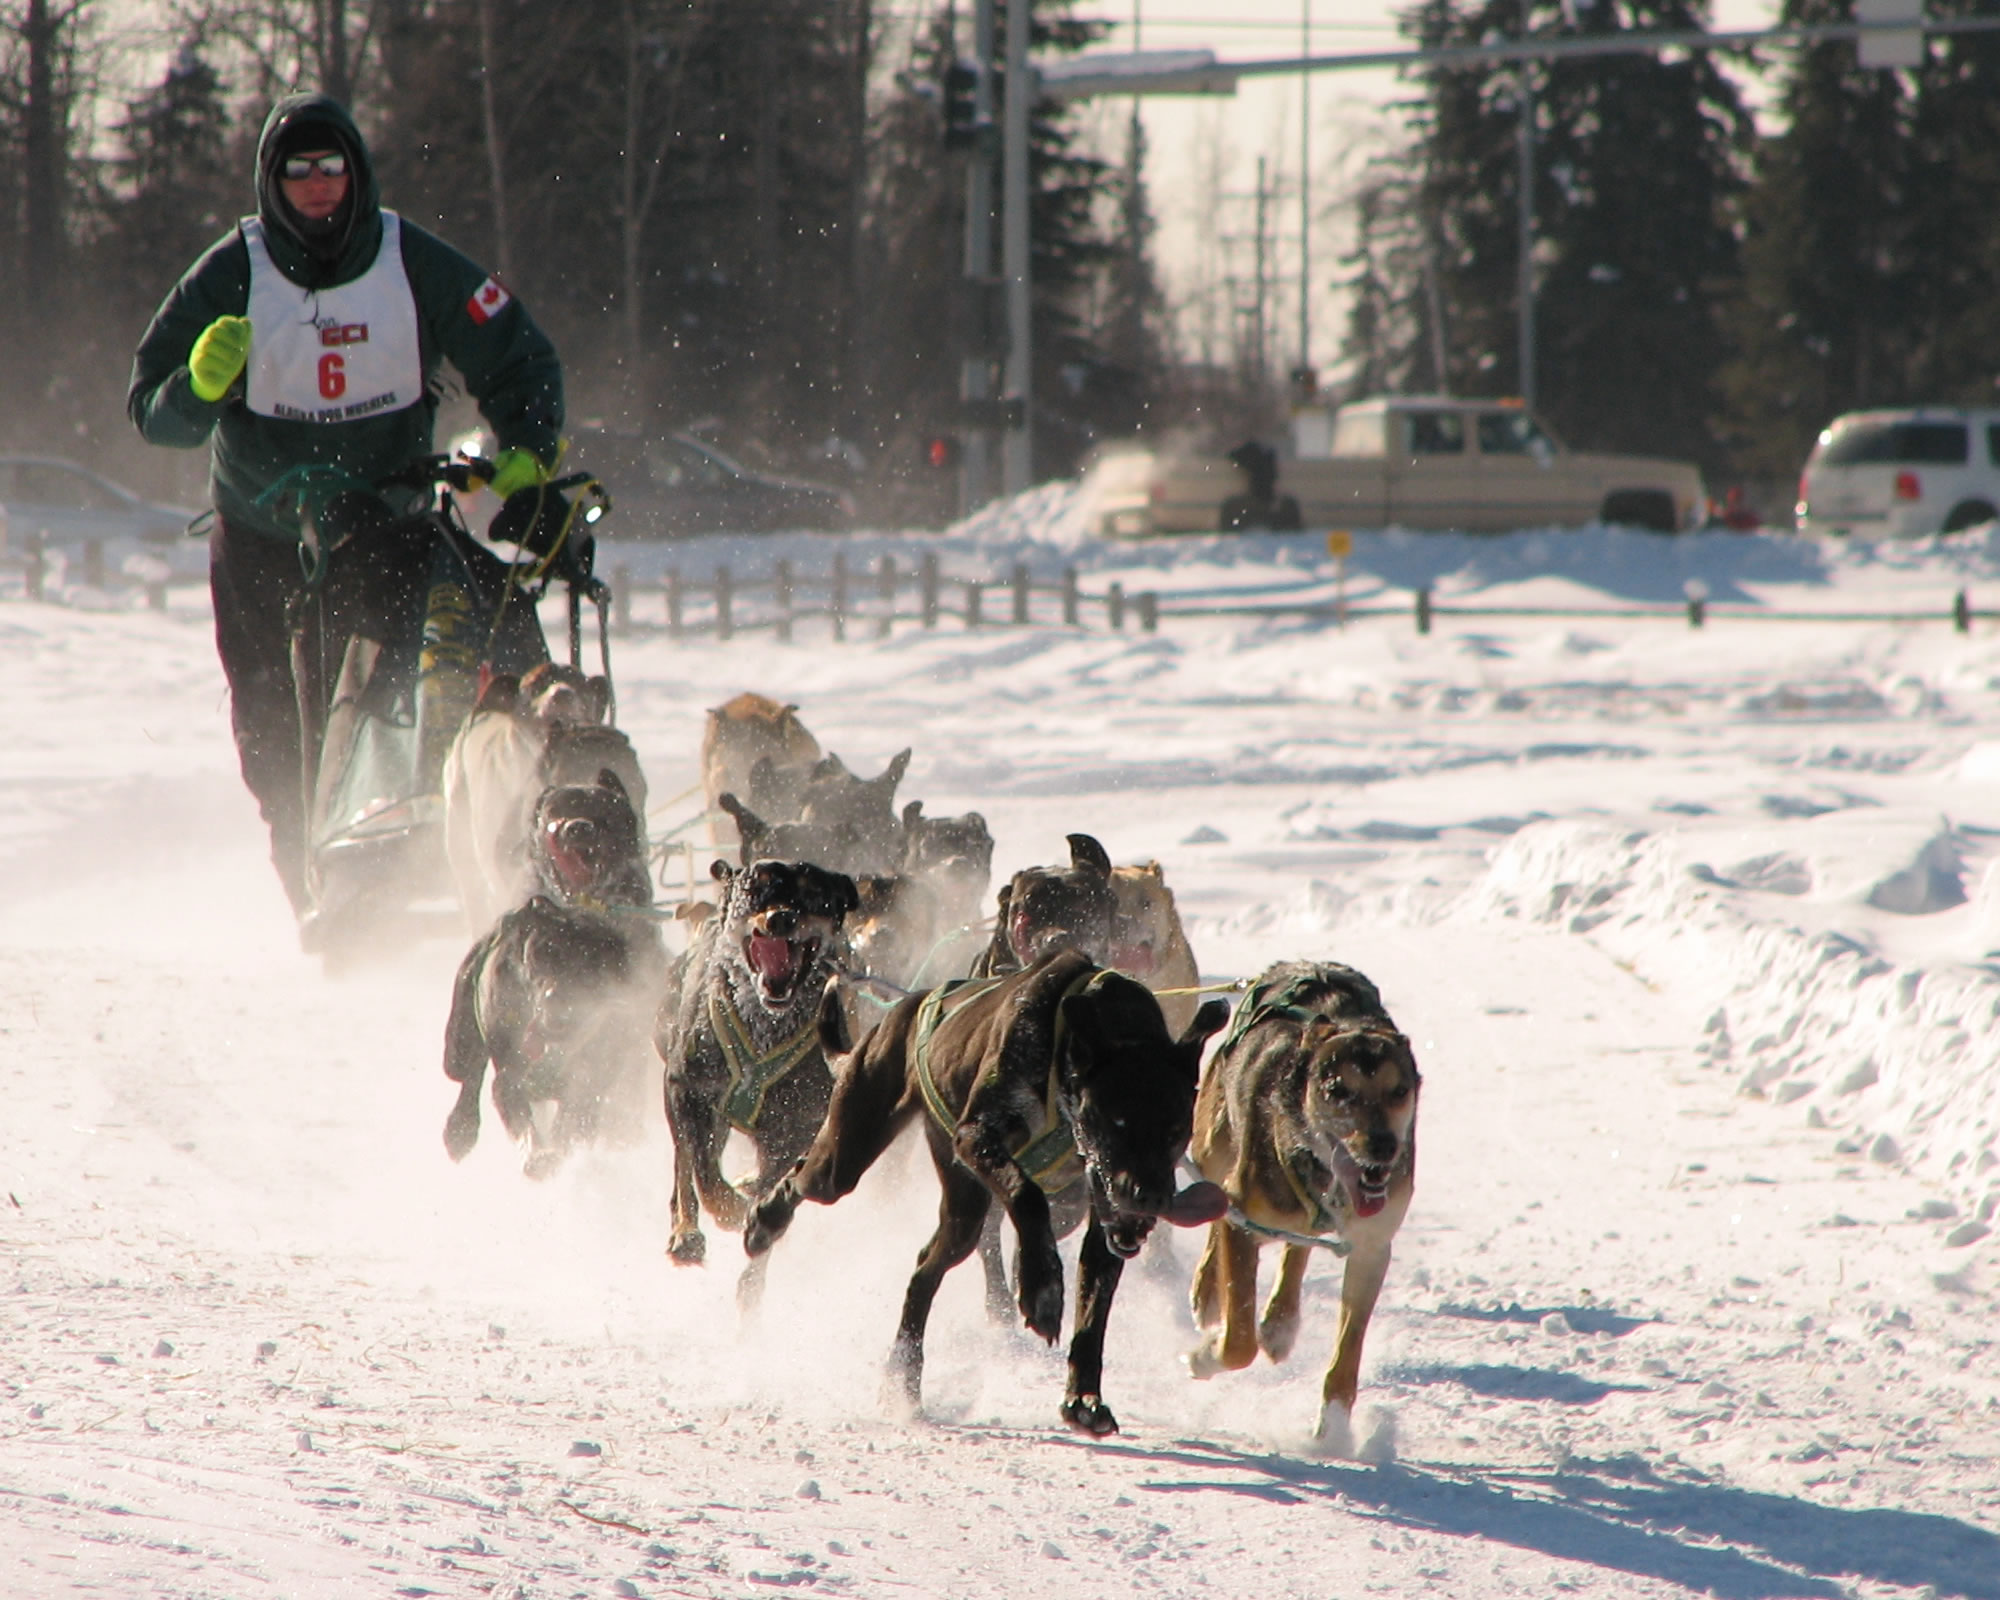 Dogsled racing Alaska Grande Prairie, Alberta Hosts Arctic Winter Games